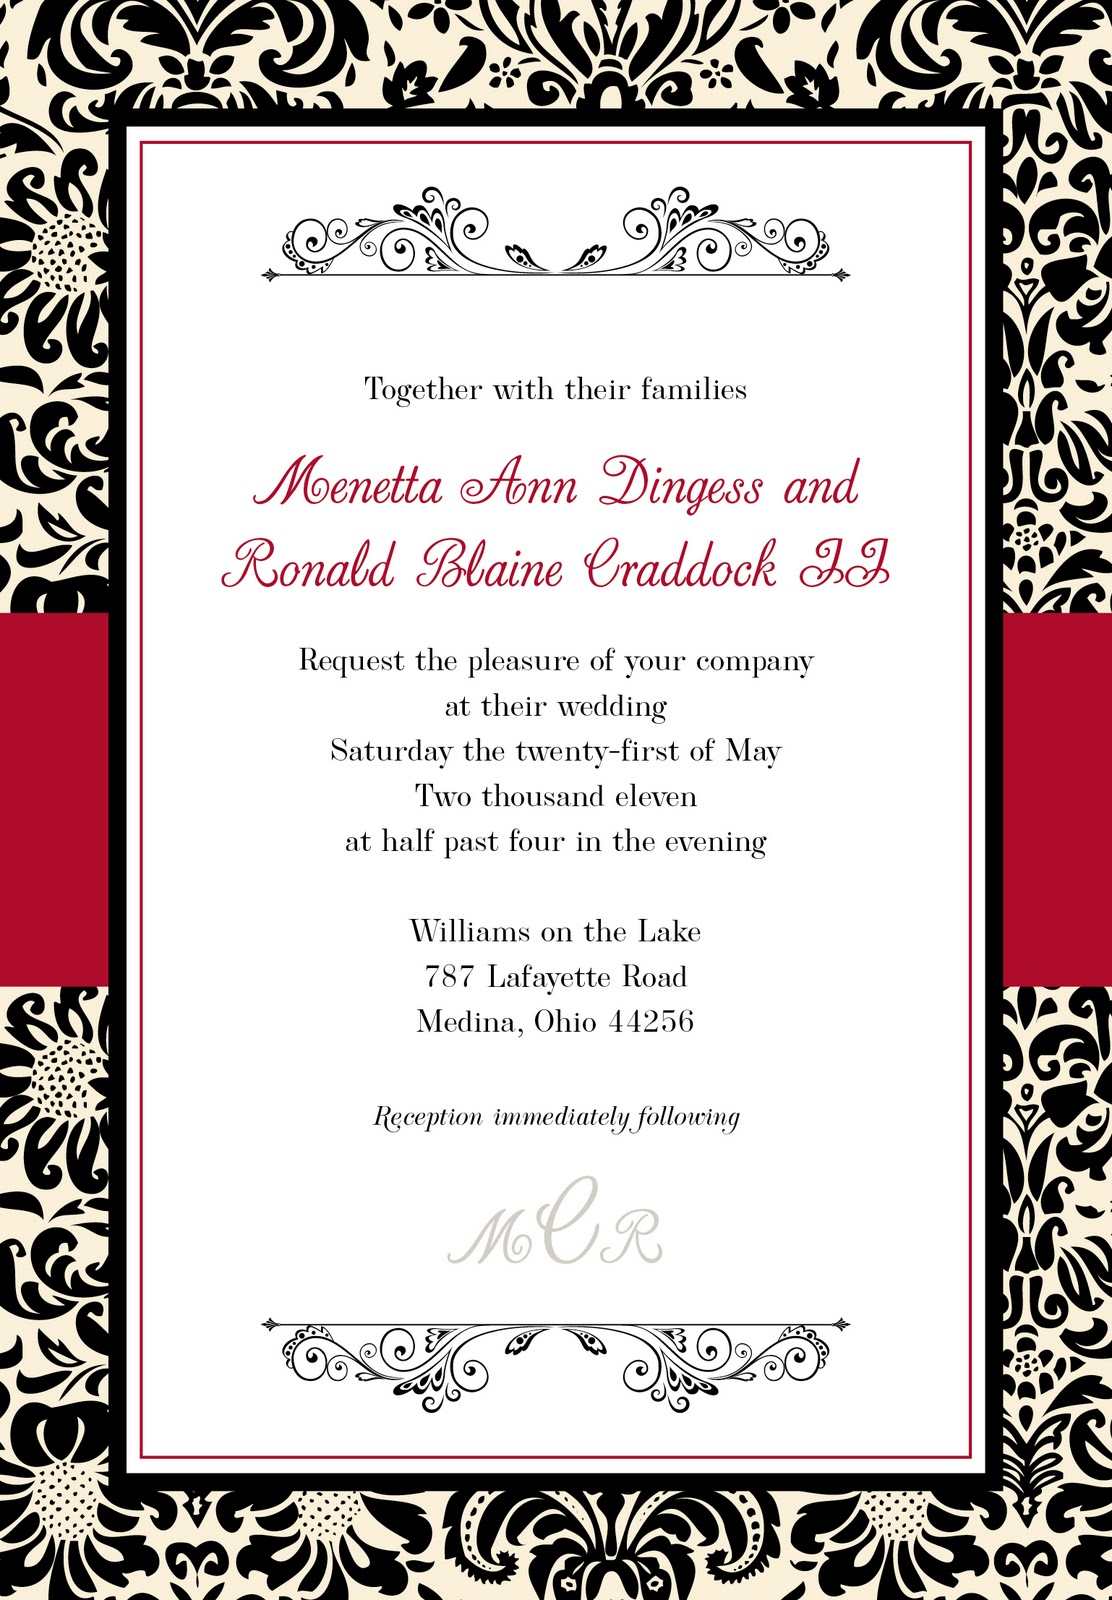 Blank Wedding Invitation Paper was luxury invitations template